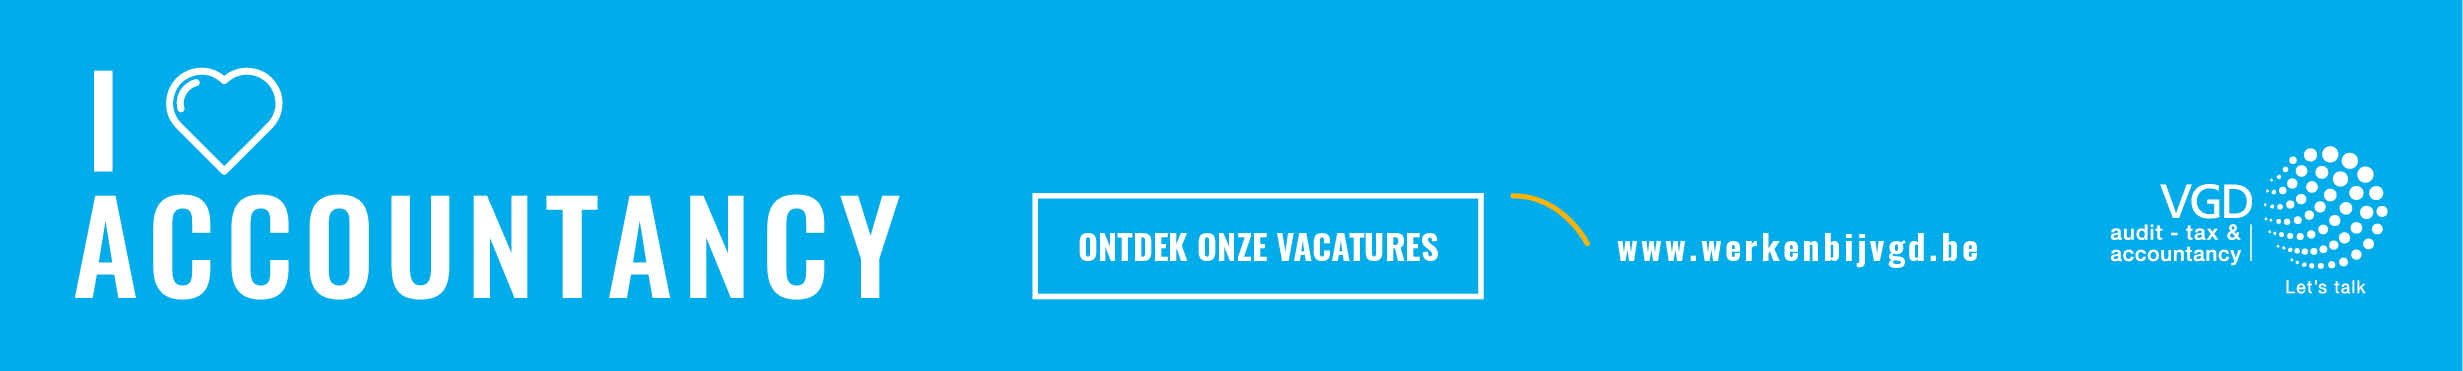 Vacatures bij Container chauffeur CE